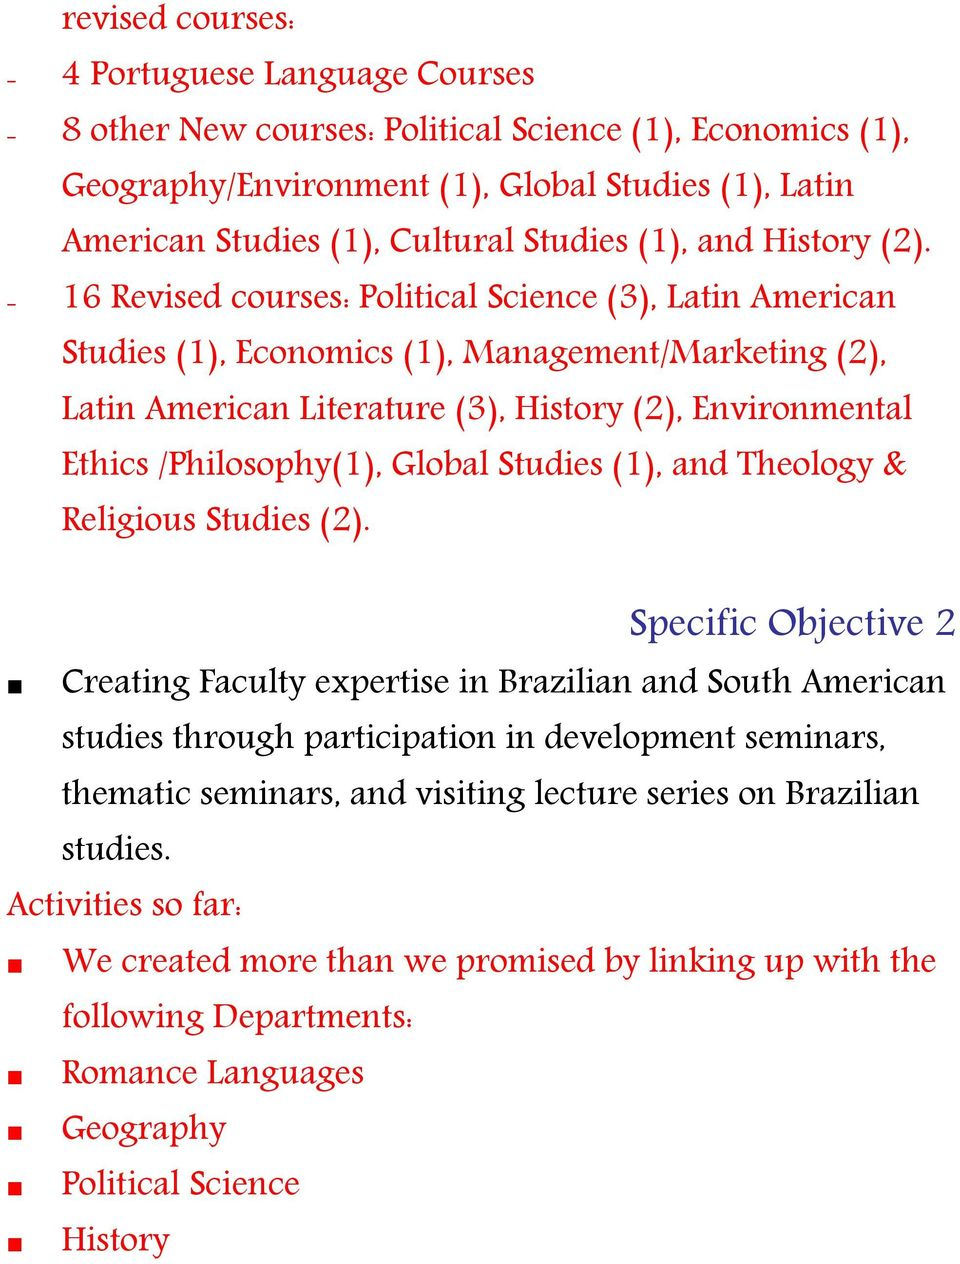 - 16 Revised courses: Political Science (3), Latin American Studies (1), Economics (1), Management/Marketing (2), Latin American Literature (3), History (2), Environmental Ethics /Philosophy(1),